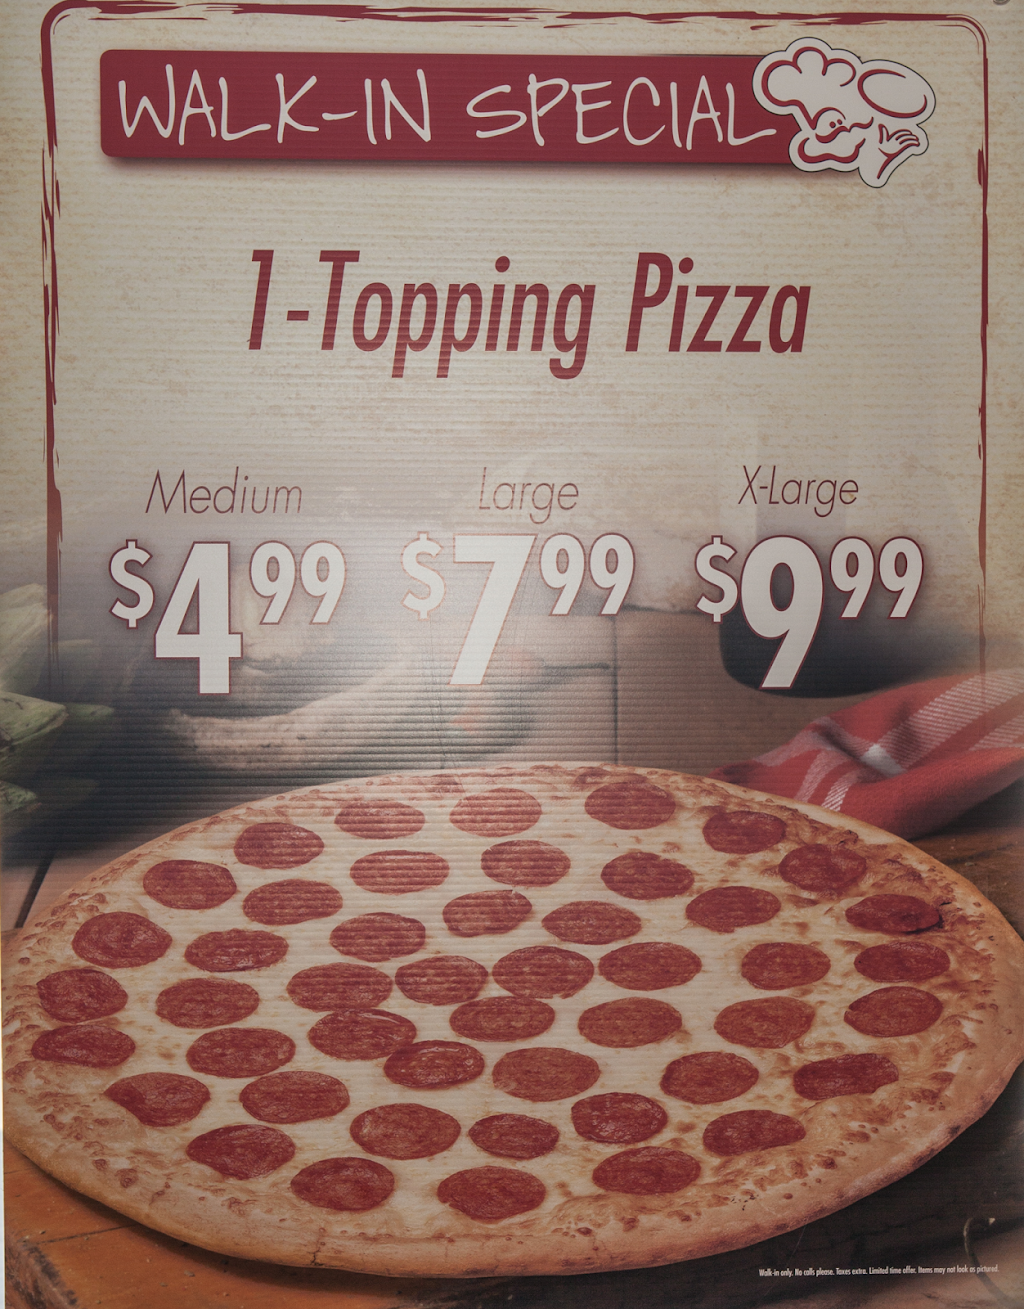 Ginos Pizza | restaurant | 2200 Rymal Rd E, Hannon, ON L0R 1P0, Canada | 8663104466 OR +1 866-310-4466